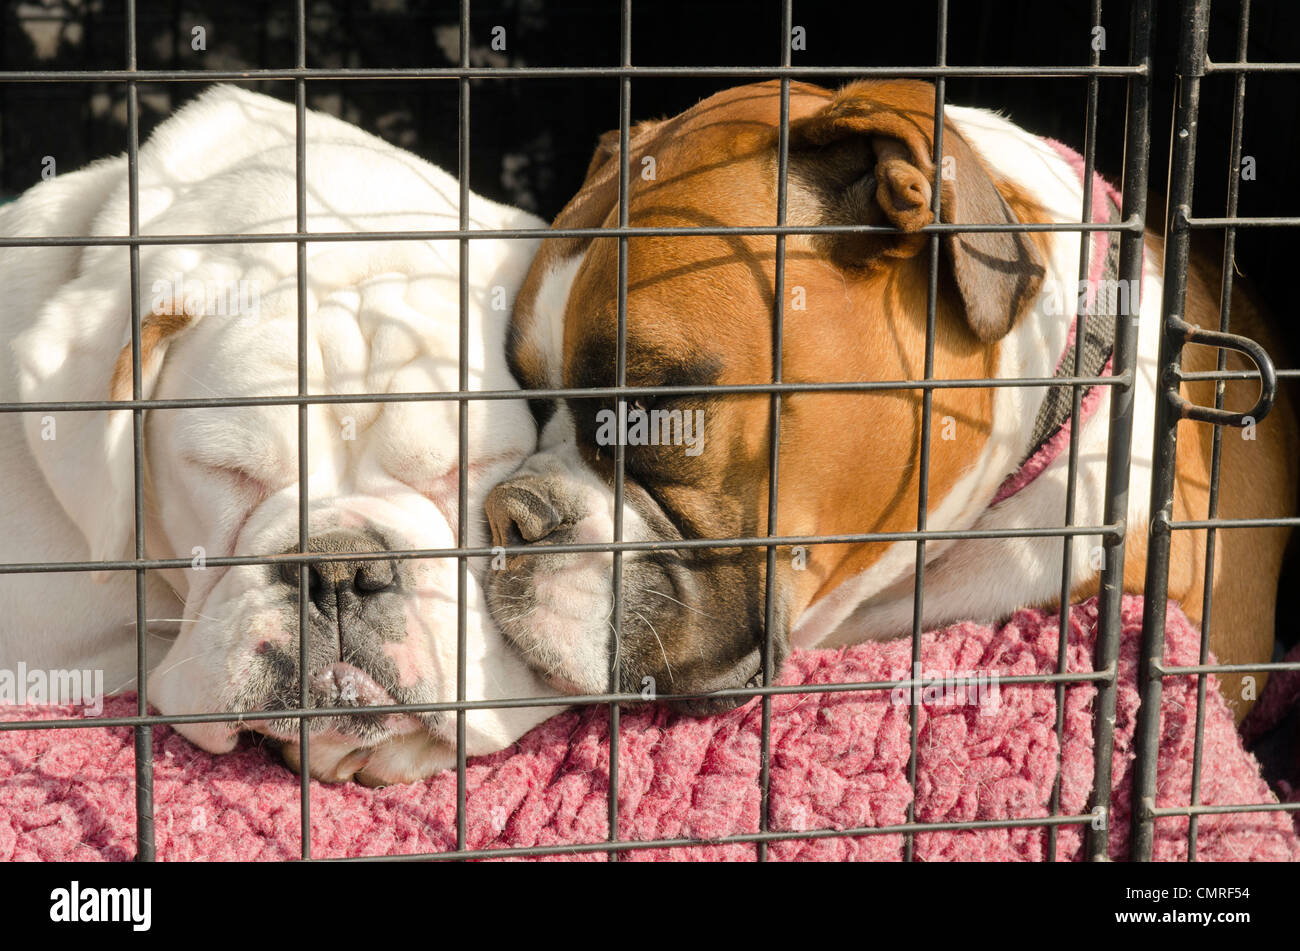 two boxer dogs sleeping in the back of a parked car. - Stock Image